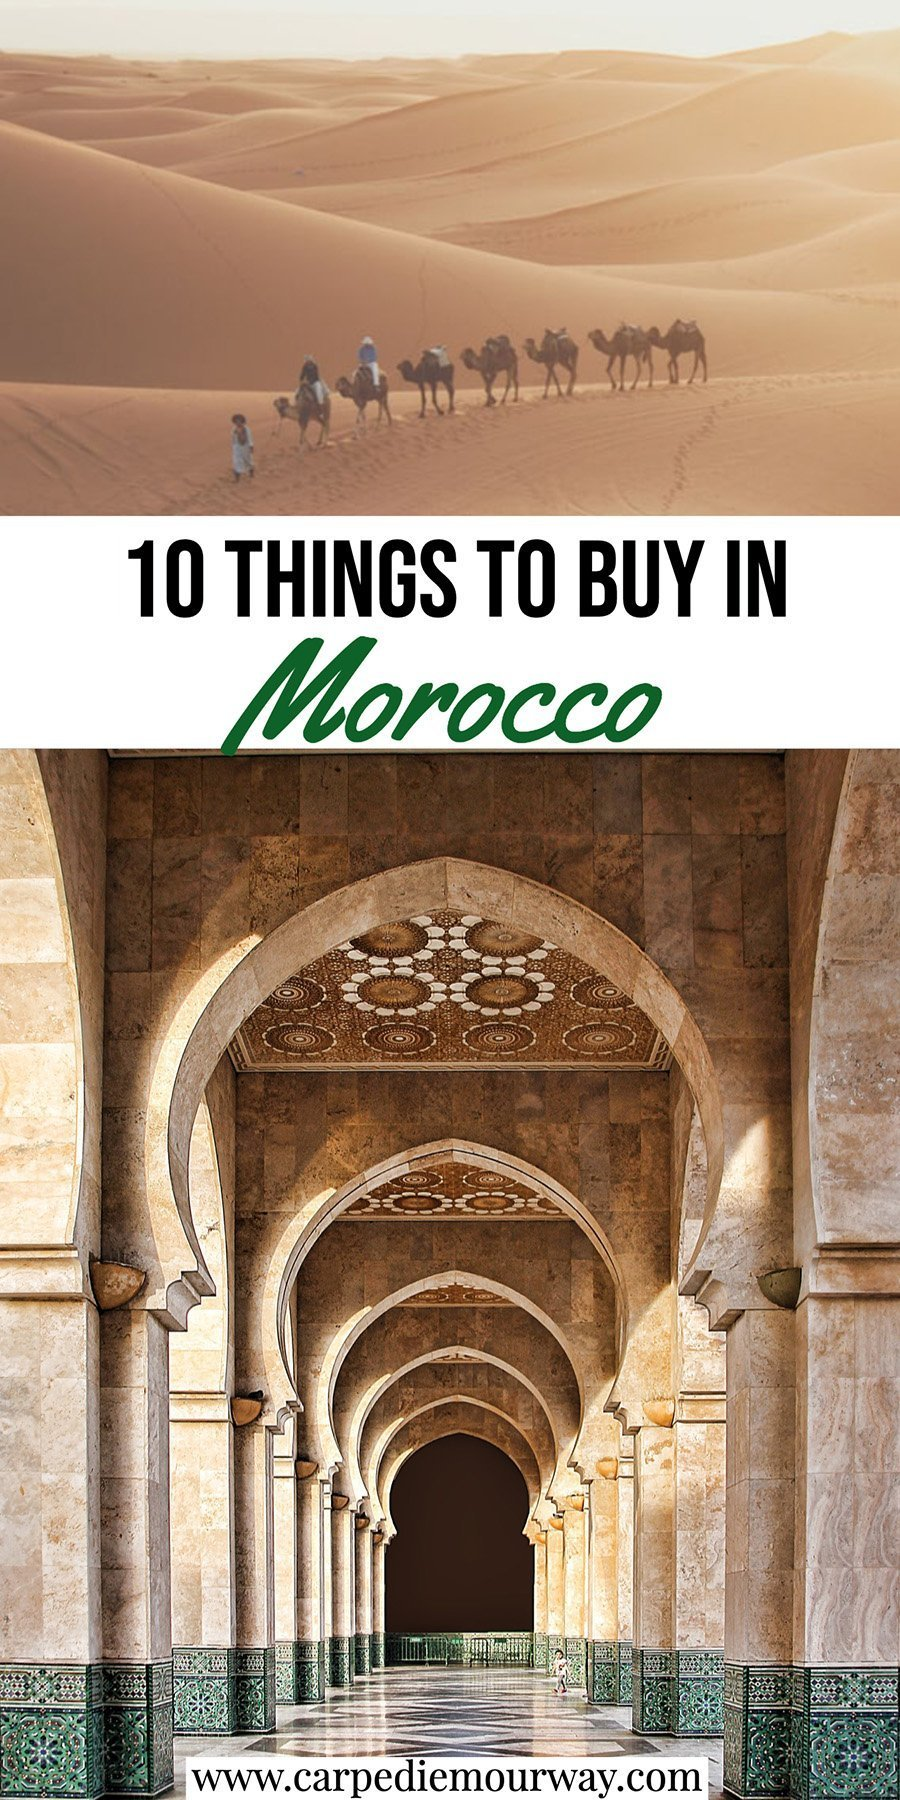 Things to Buy in Morocco